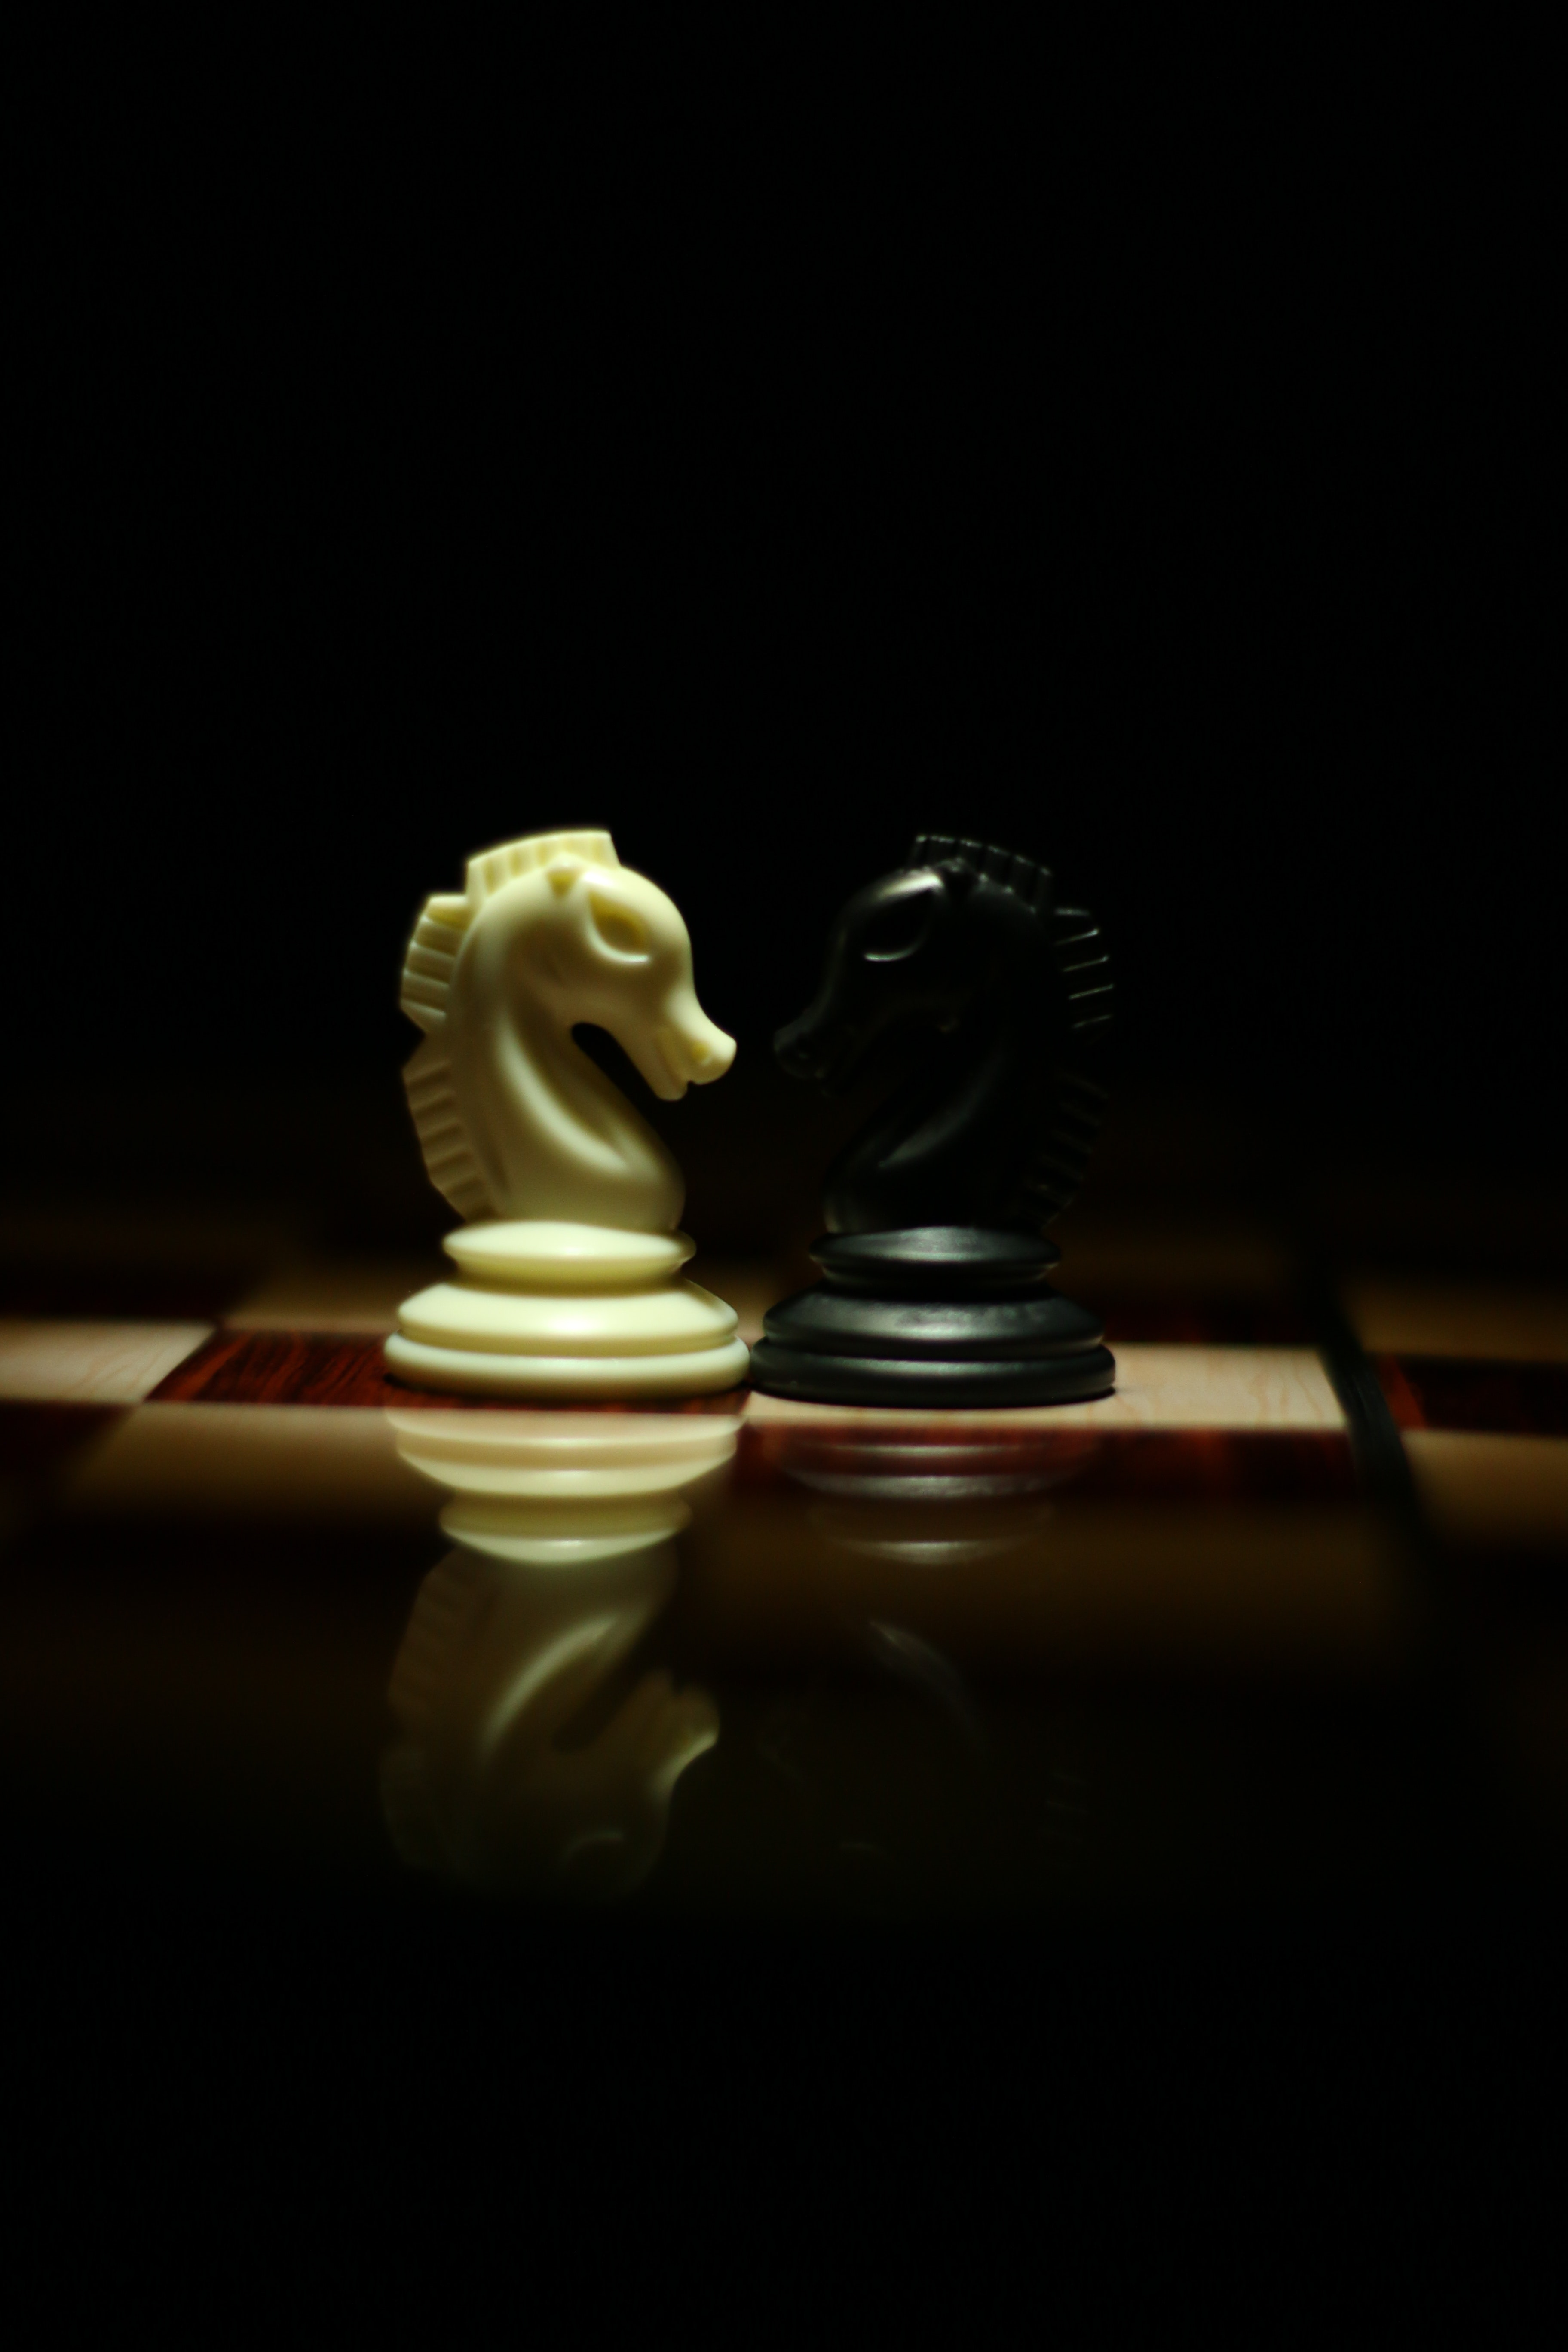 Two White and Black Chess Knights Facing Each Other on Chess Board, Game, Tournament, Tactics, Strategy, HQ Photo